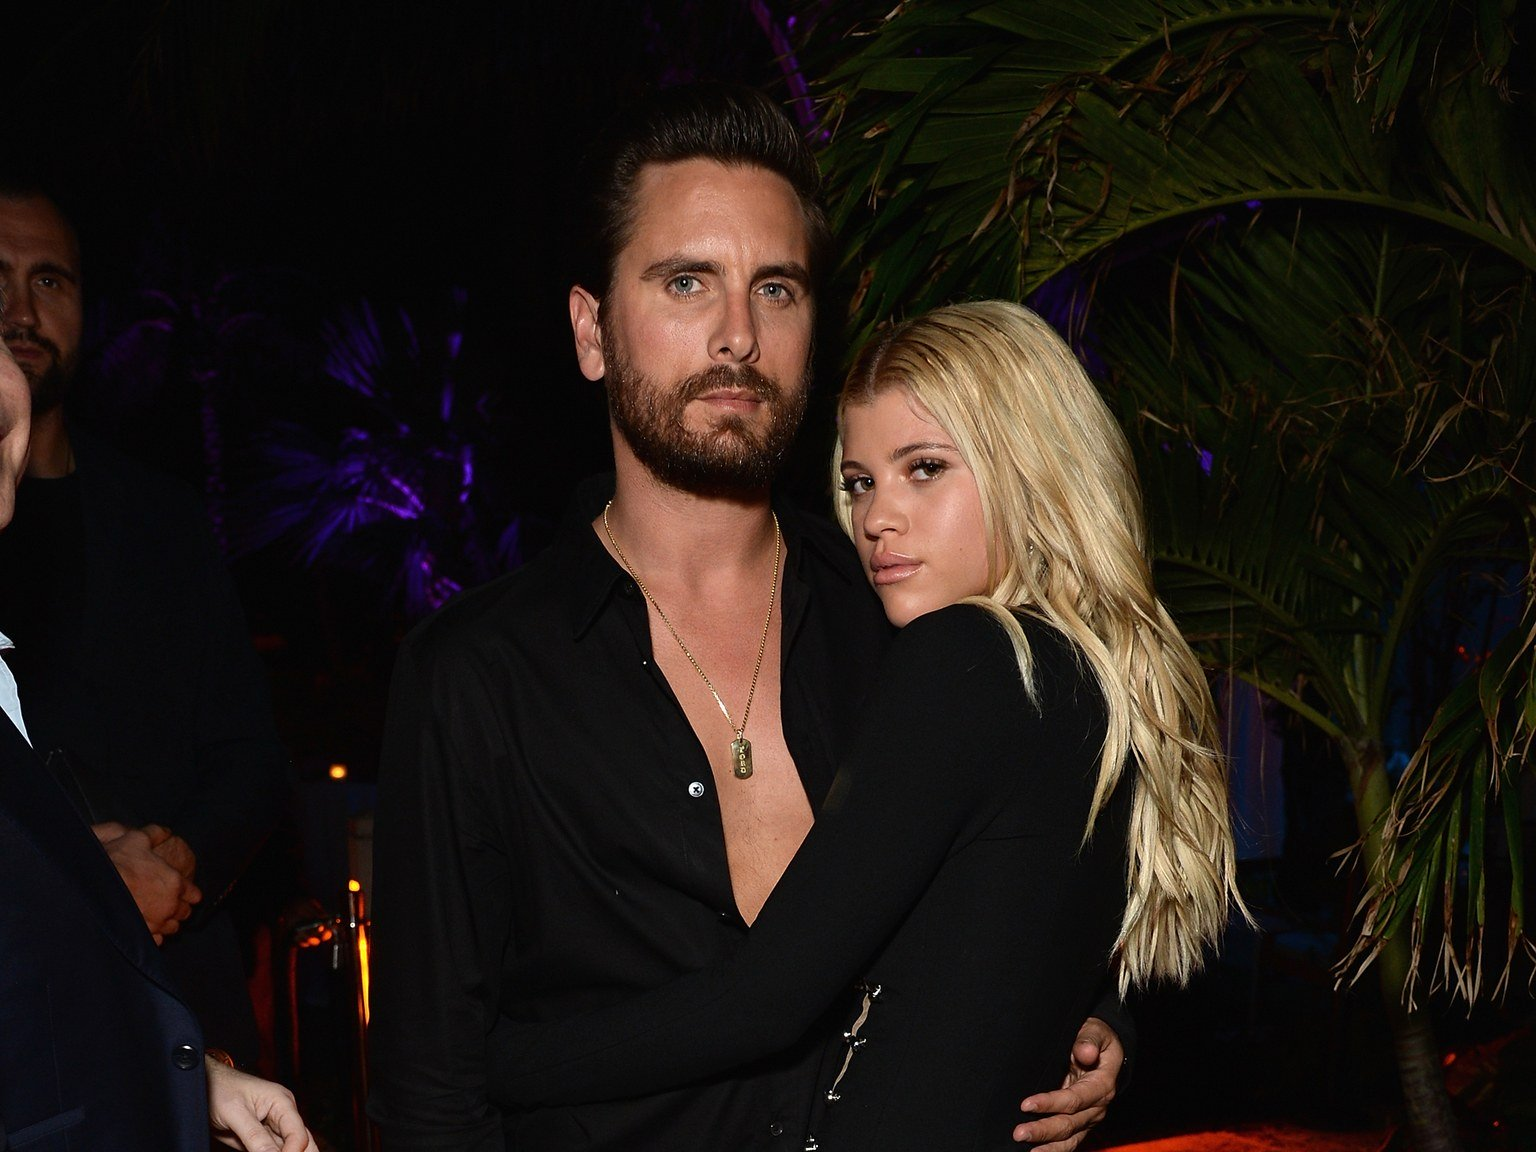 Sofia Richie And Scott Disick Reunite On Holiday After Reports Fly He Wants Her Back